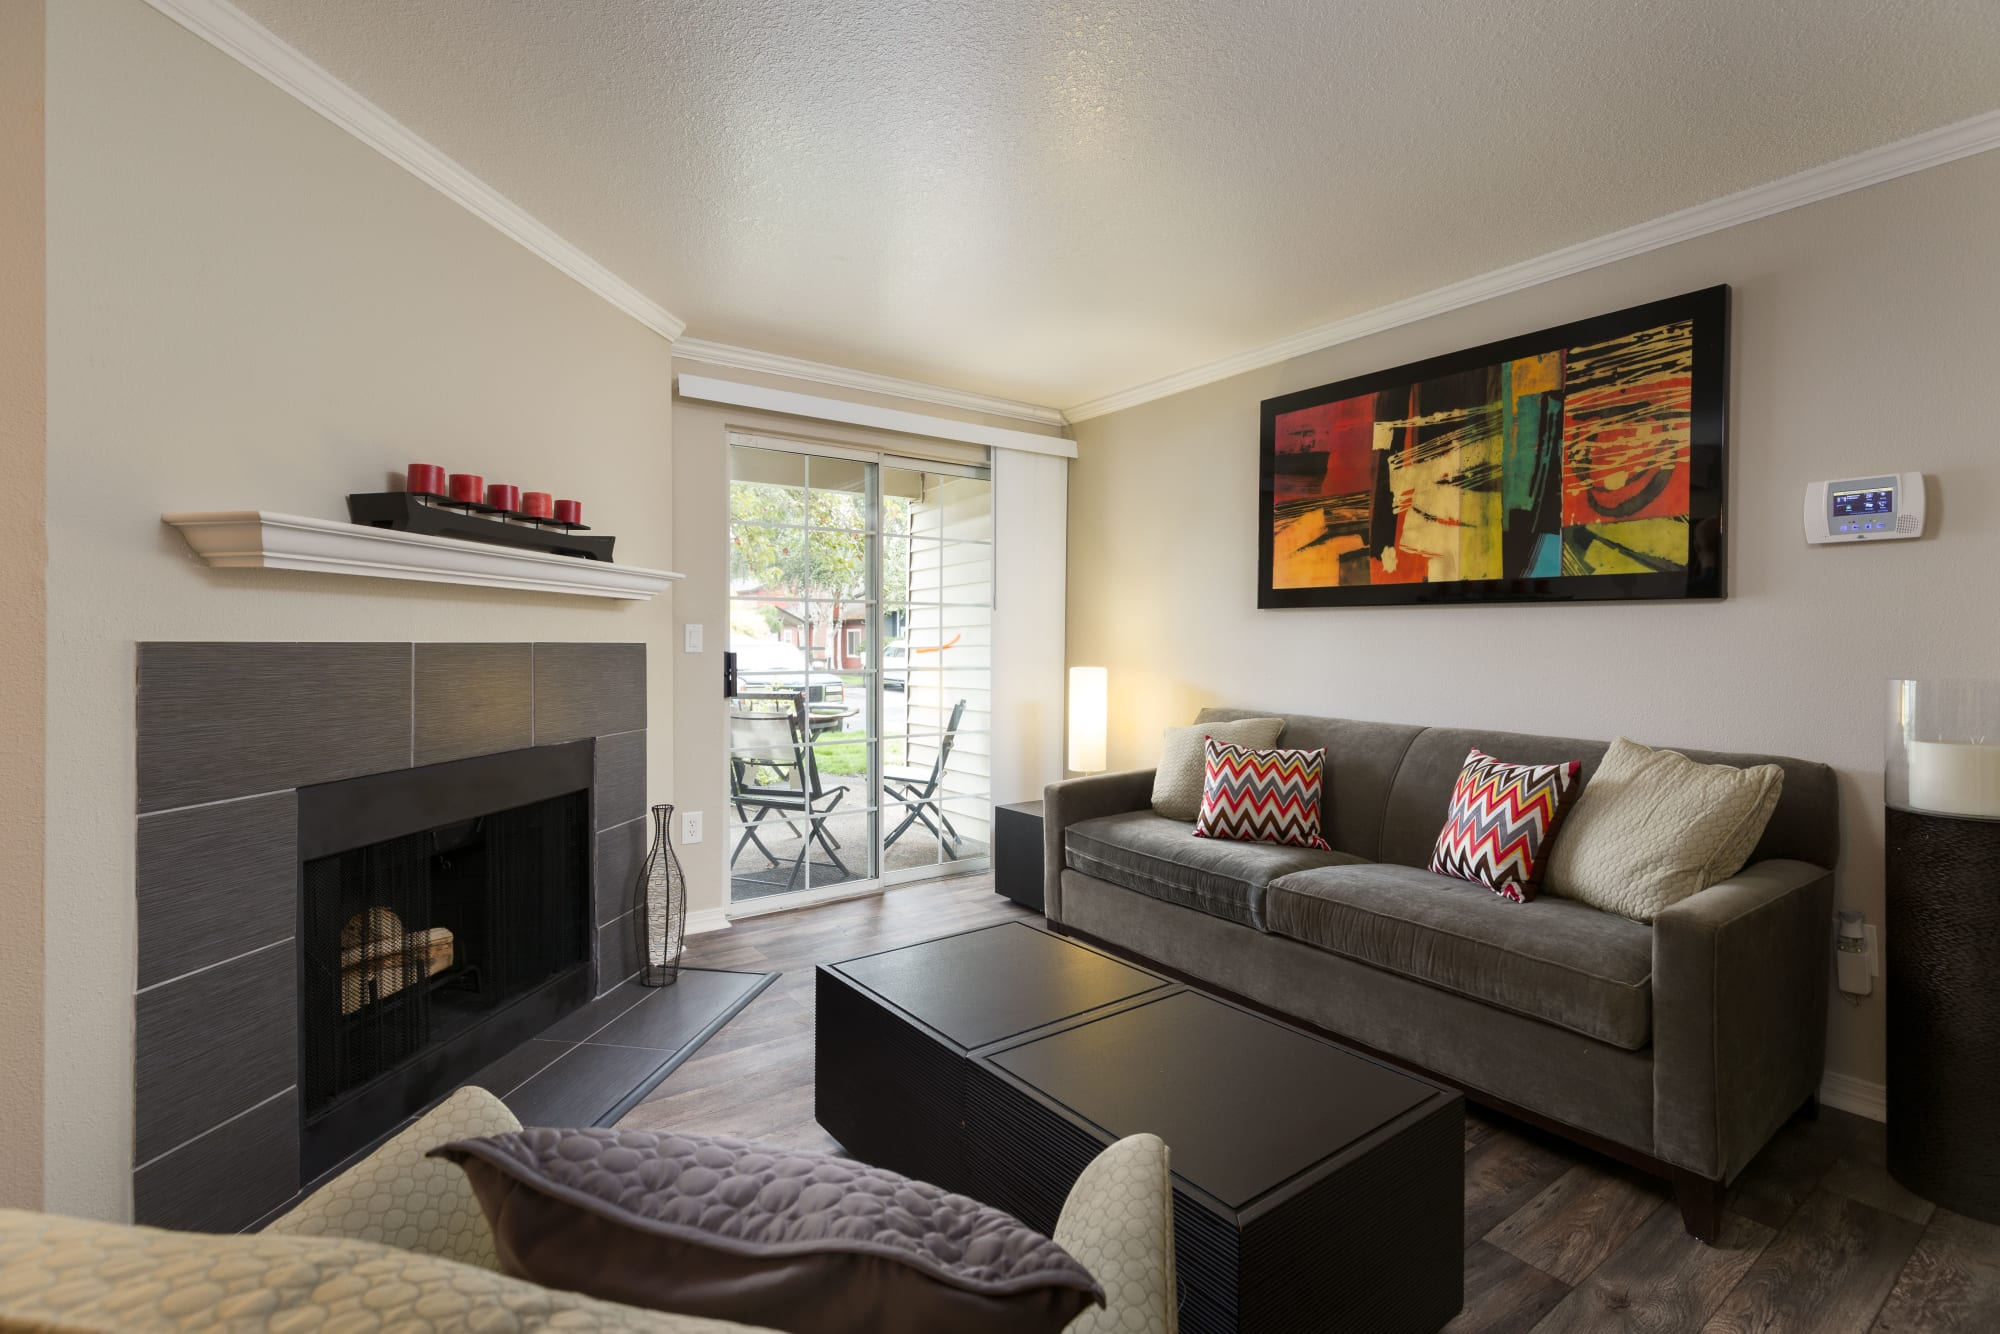 Living Room With Chimney at Walnut Grove Landing Apartments in Vancouver, WA